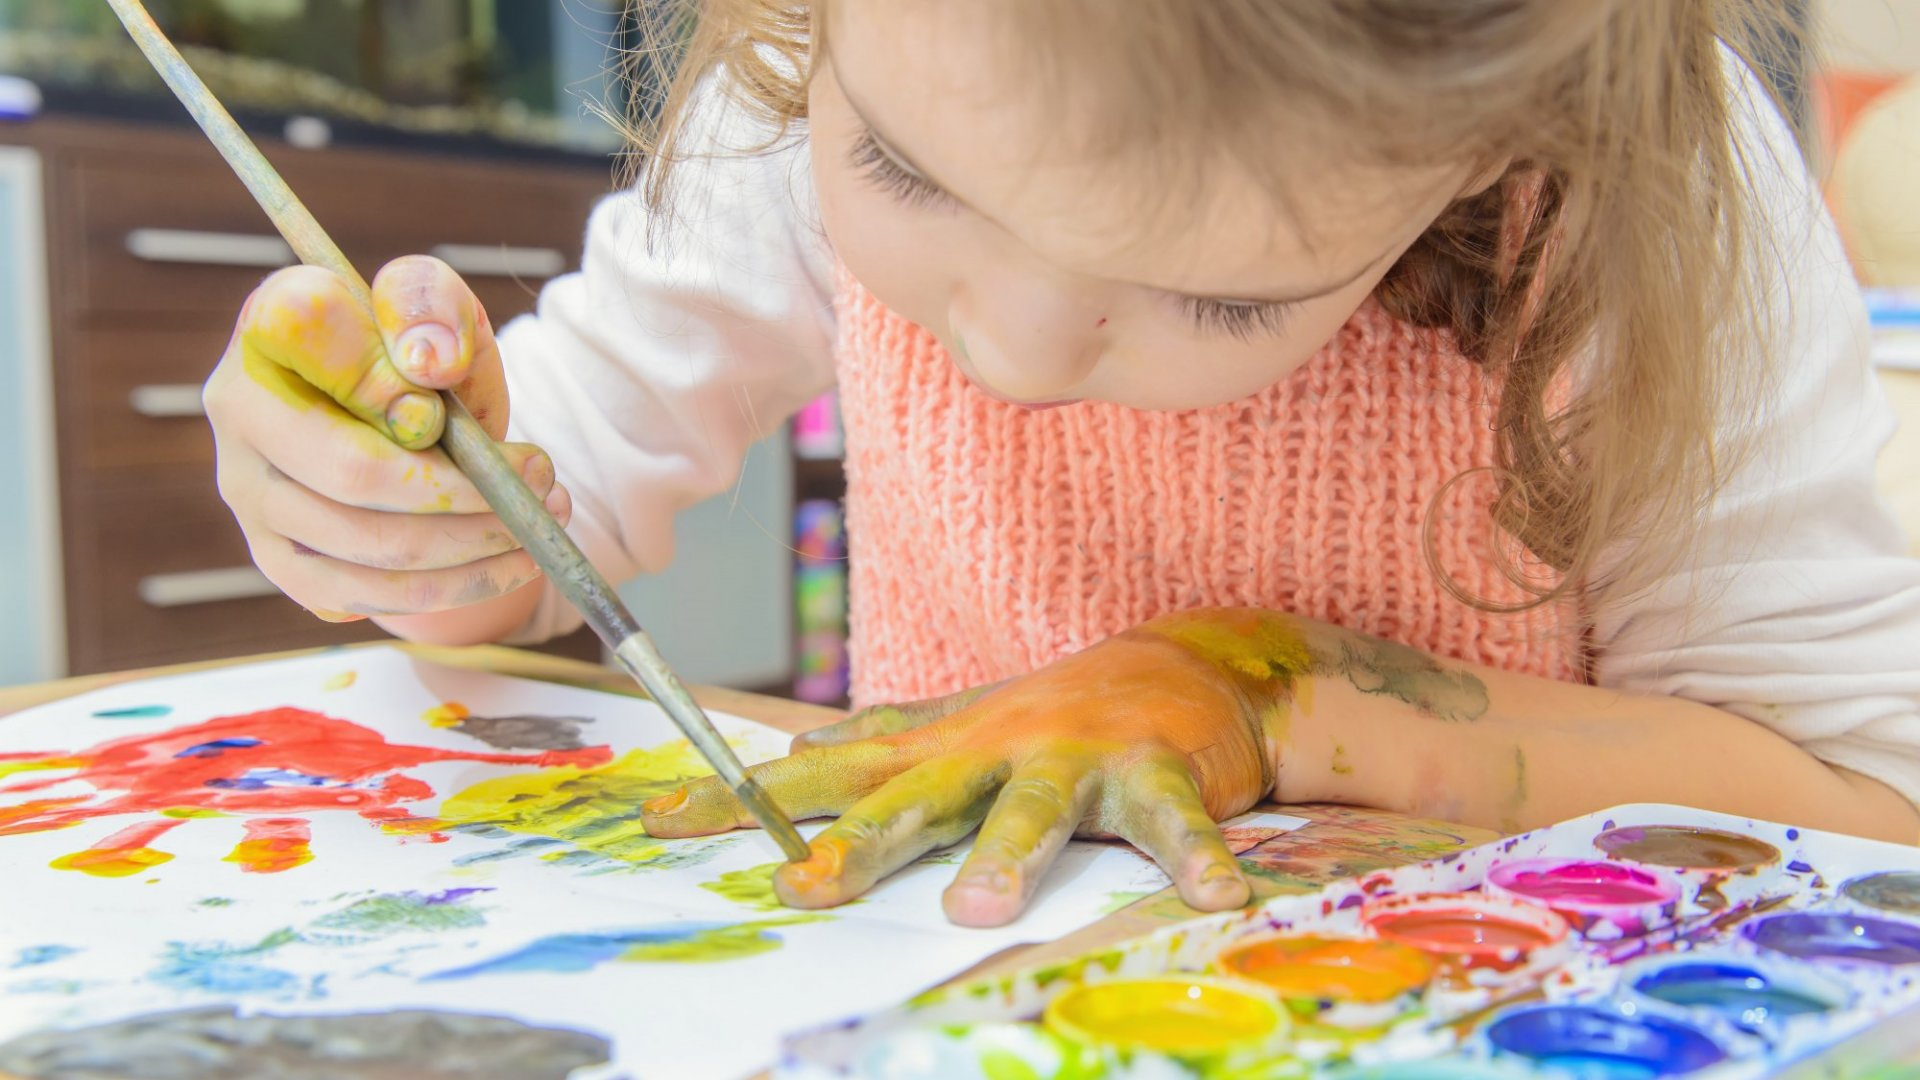 Want to Raise Creative Kids? Science Says Do This With Their Toys (but Most Parents Are Afraid to)